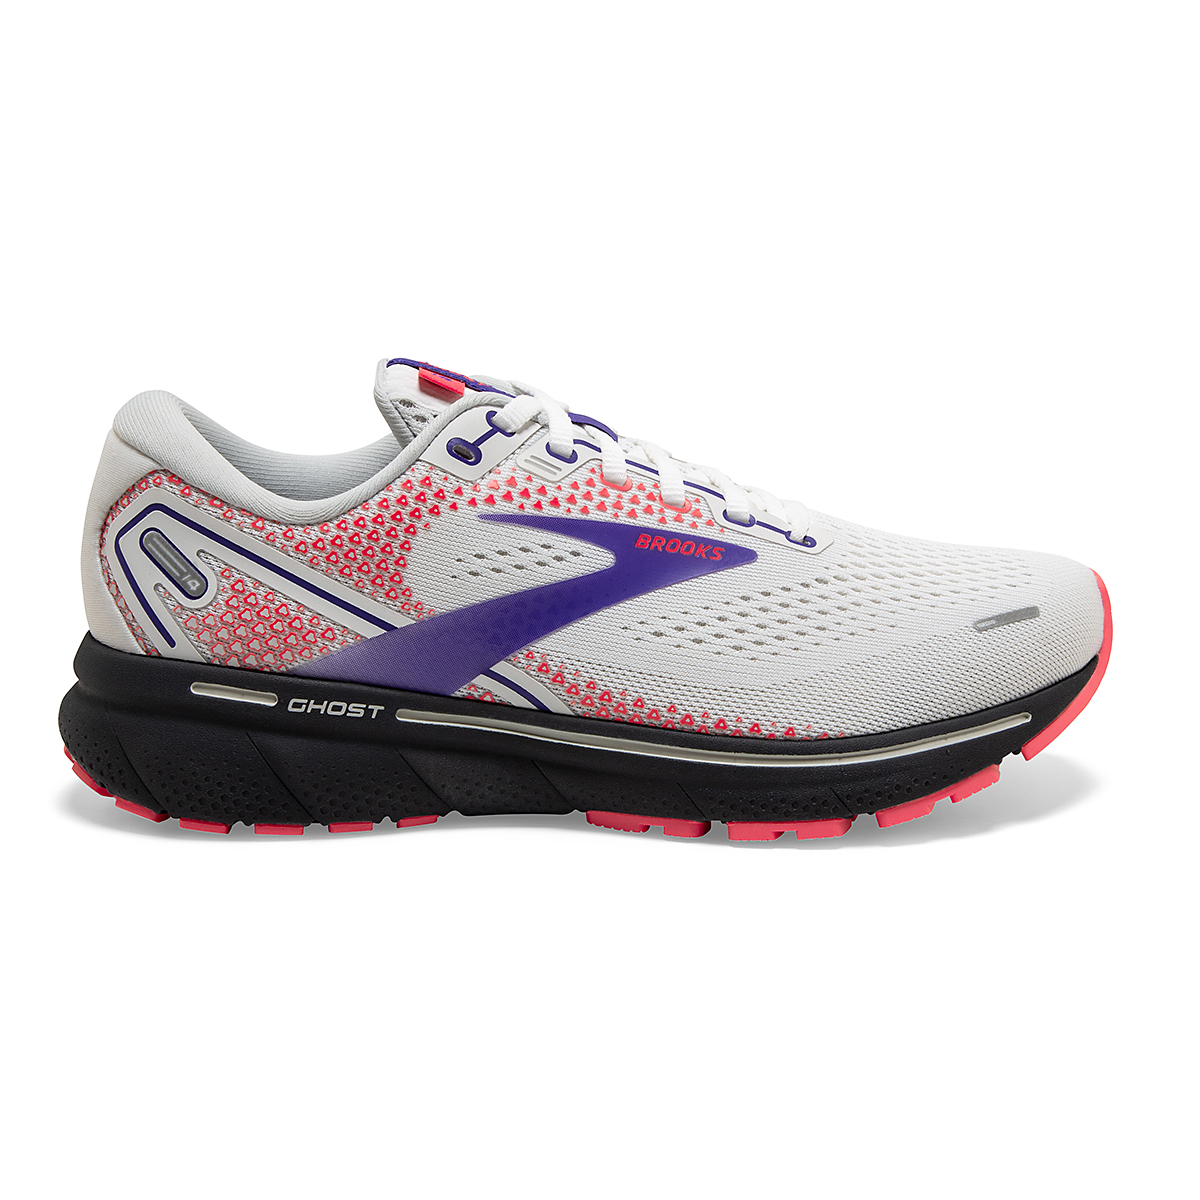 Women's Brooks Ghost 14 Running Shoe - Color: White/Purple/Coral - Size: 5 - Width: Regular, White/Purple/Coral, large, image 1